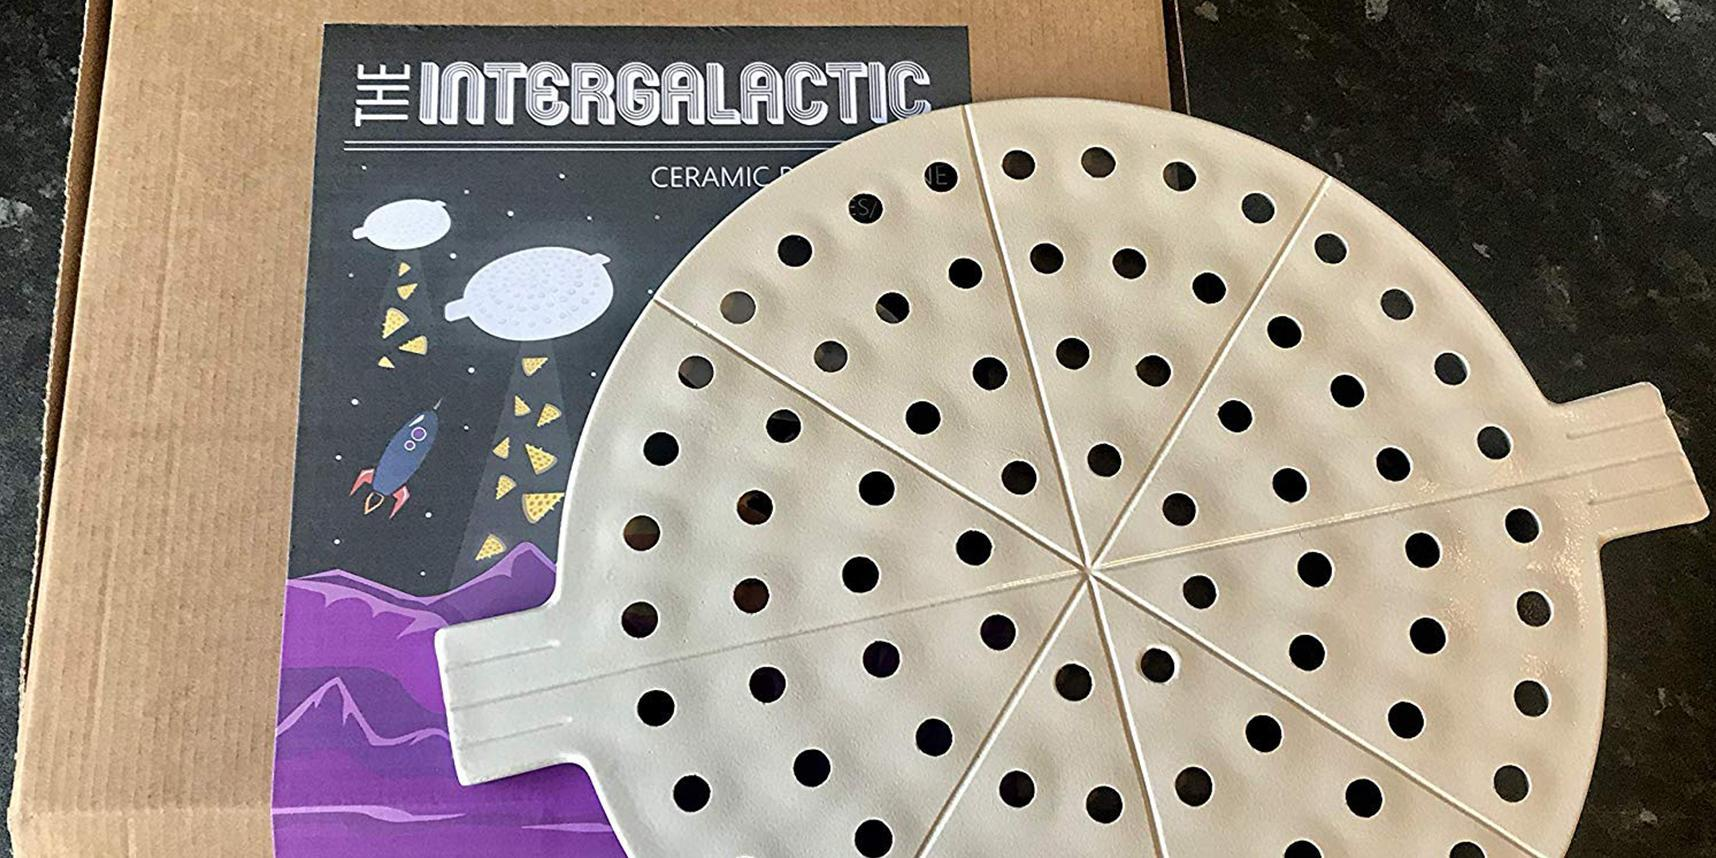 Stepstone Pottery uses BioPak for their pizza stone packaging